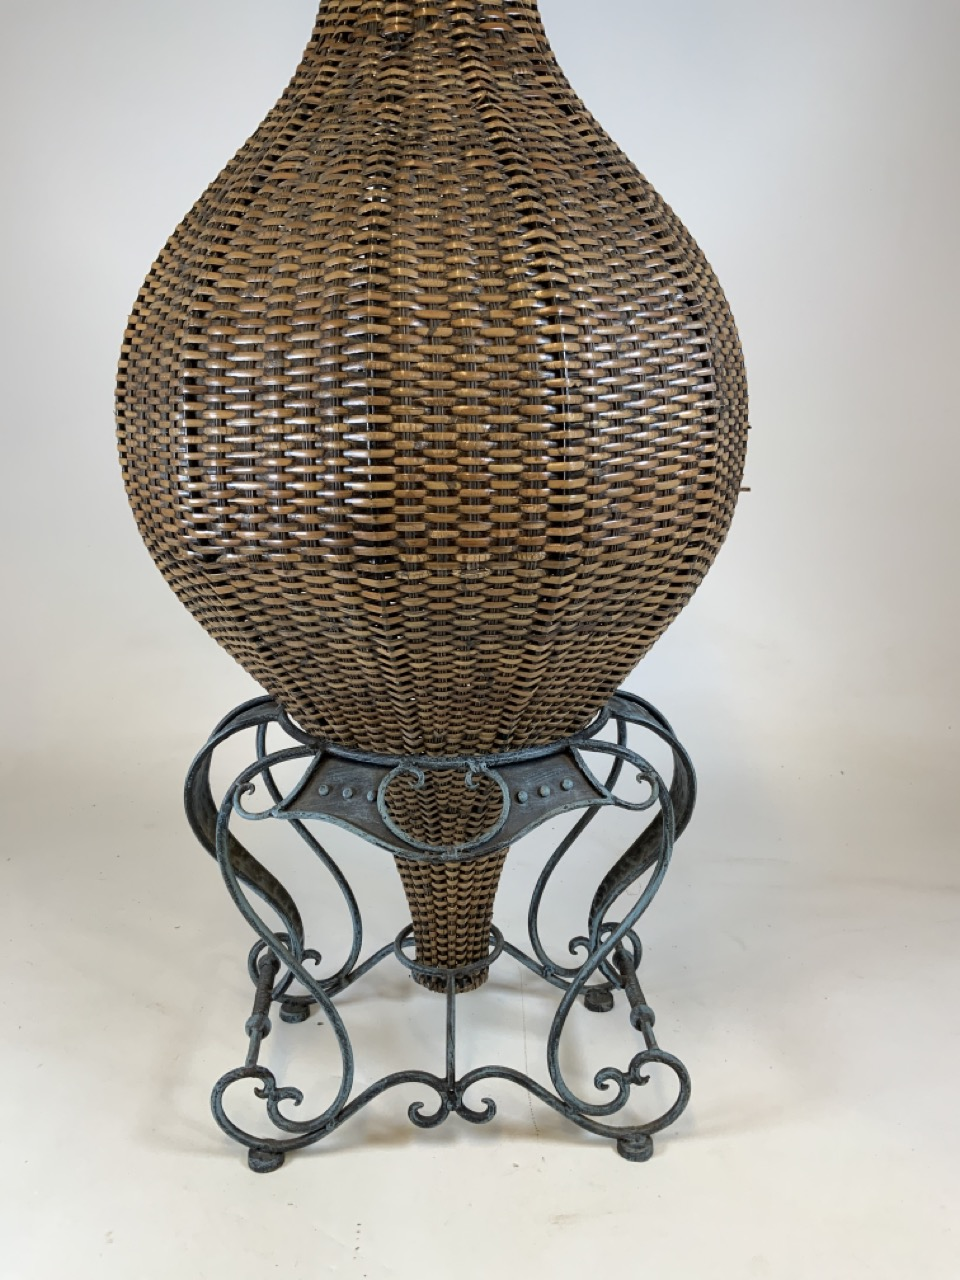 A large wicker conservatory vase in stand with metal hoop handles and decorative metal top. W:24cm x - Image 3 of 5